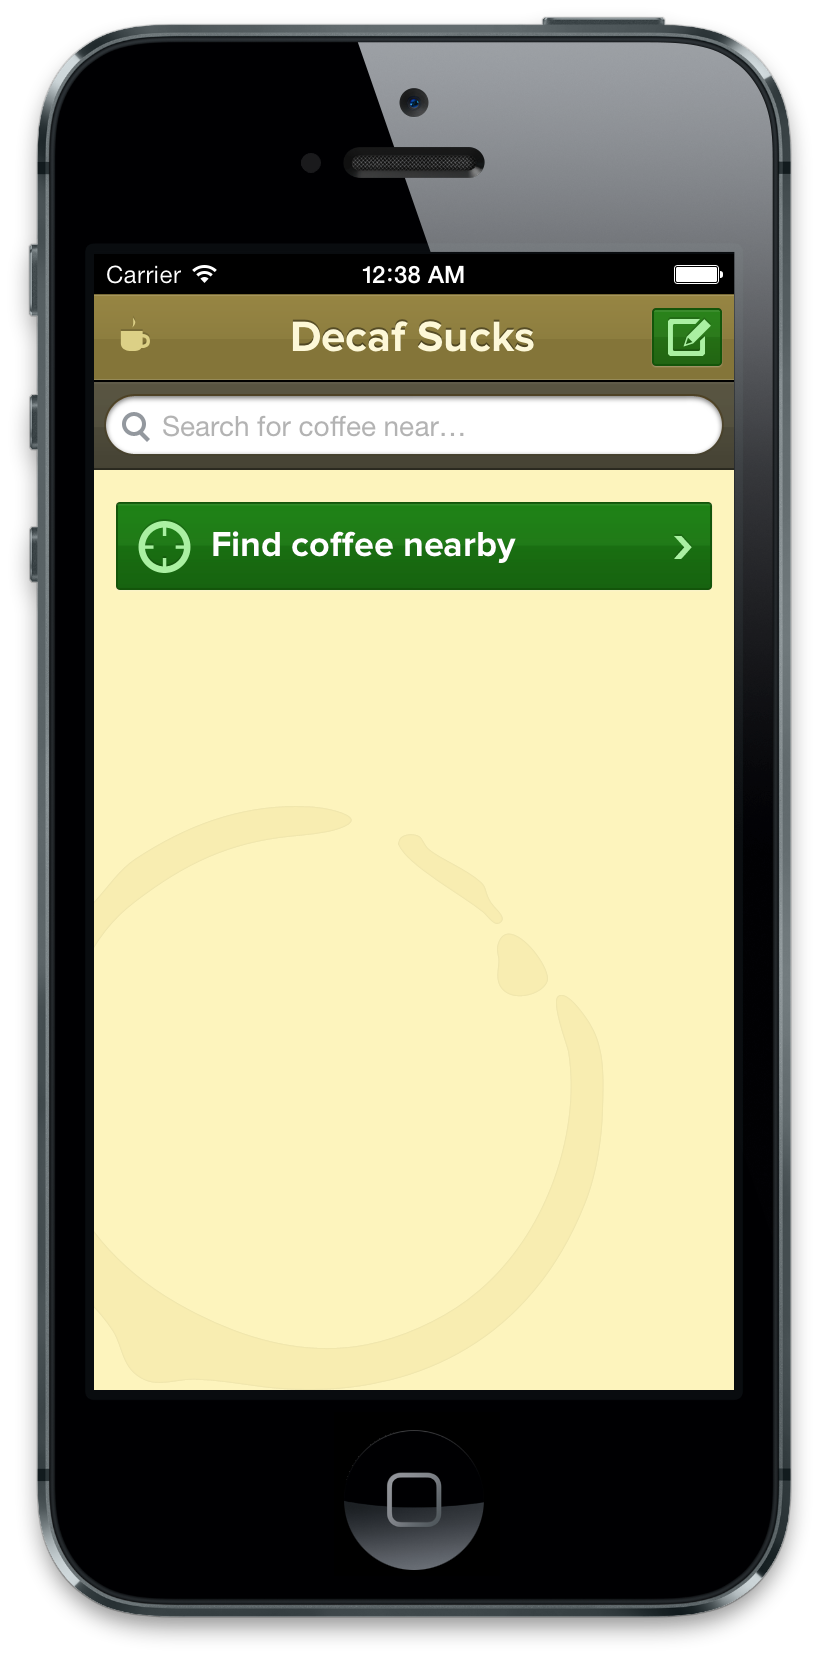 The empty Decaf Sucks first screen